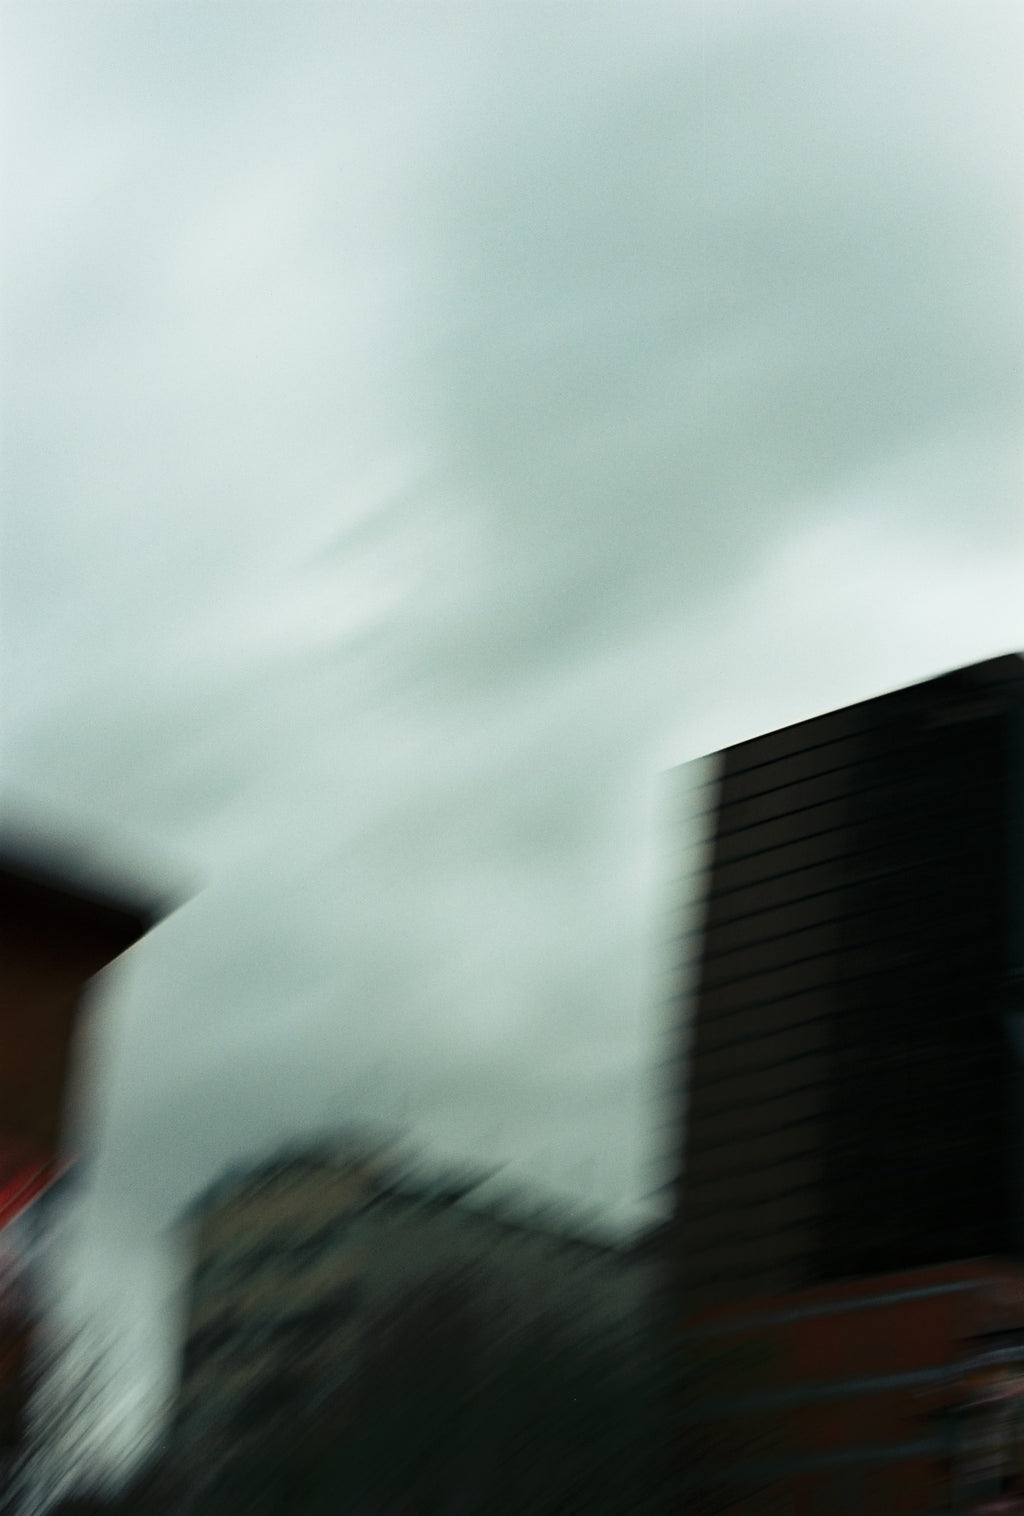 A photograph is a city building on a dark day with motion blur. Artwork Prints wallart Melbourne travel Australia, Photographic prints, Framed artwork,  Australian Photography  Photography for sale, Film photography Vintage photo, style Interio,r design, Film, photography, Pictures Abstract film photography,